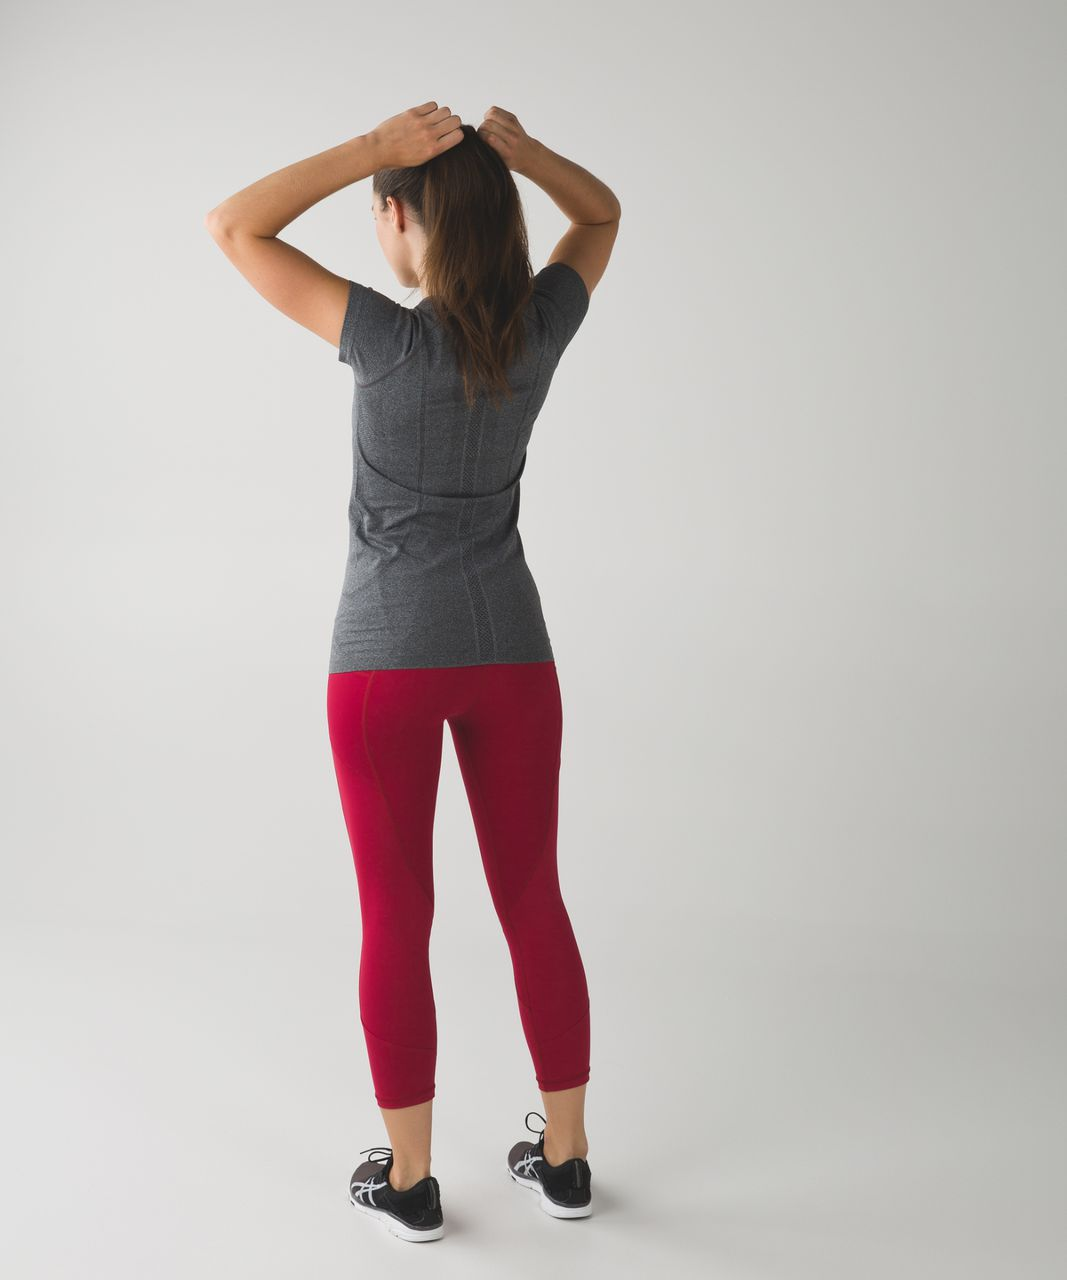 Lululemon All The Right Places Crop - Cranberry / Windy Blooms Regal Plum Multi